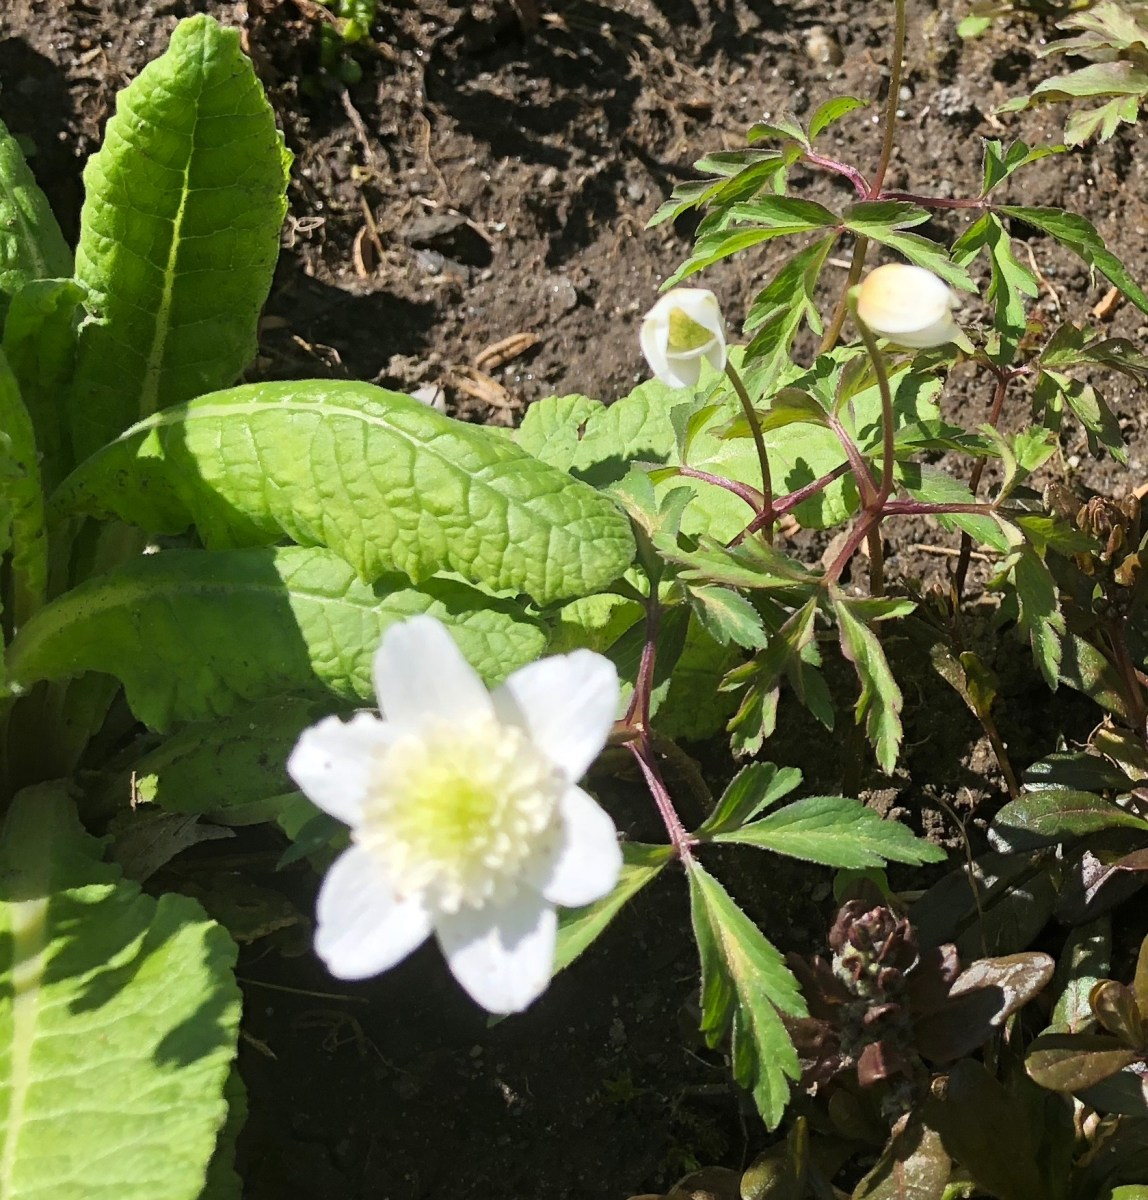 The Wind's Daughter, Anemone nemorosa